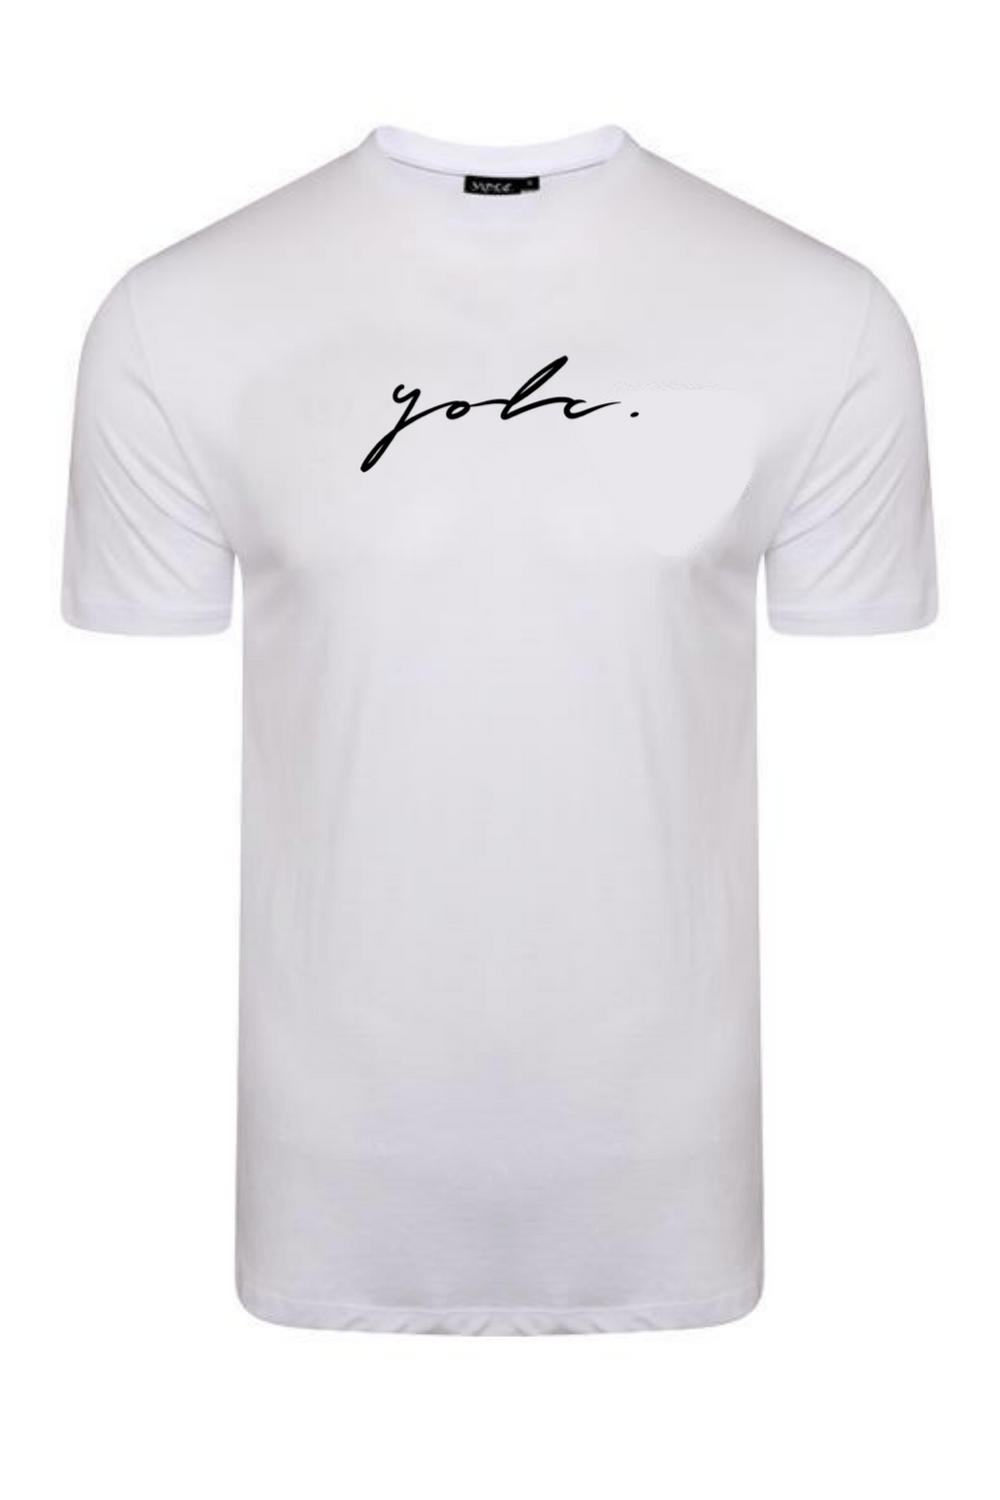 21c3957b9 Signature T-Shirt White – Young Outlaws Club.